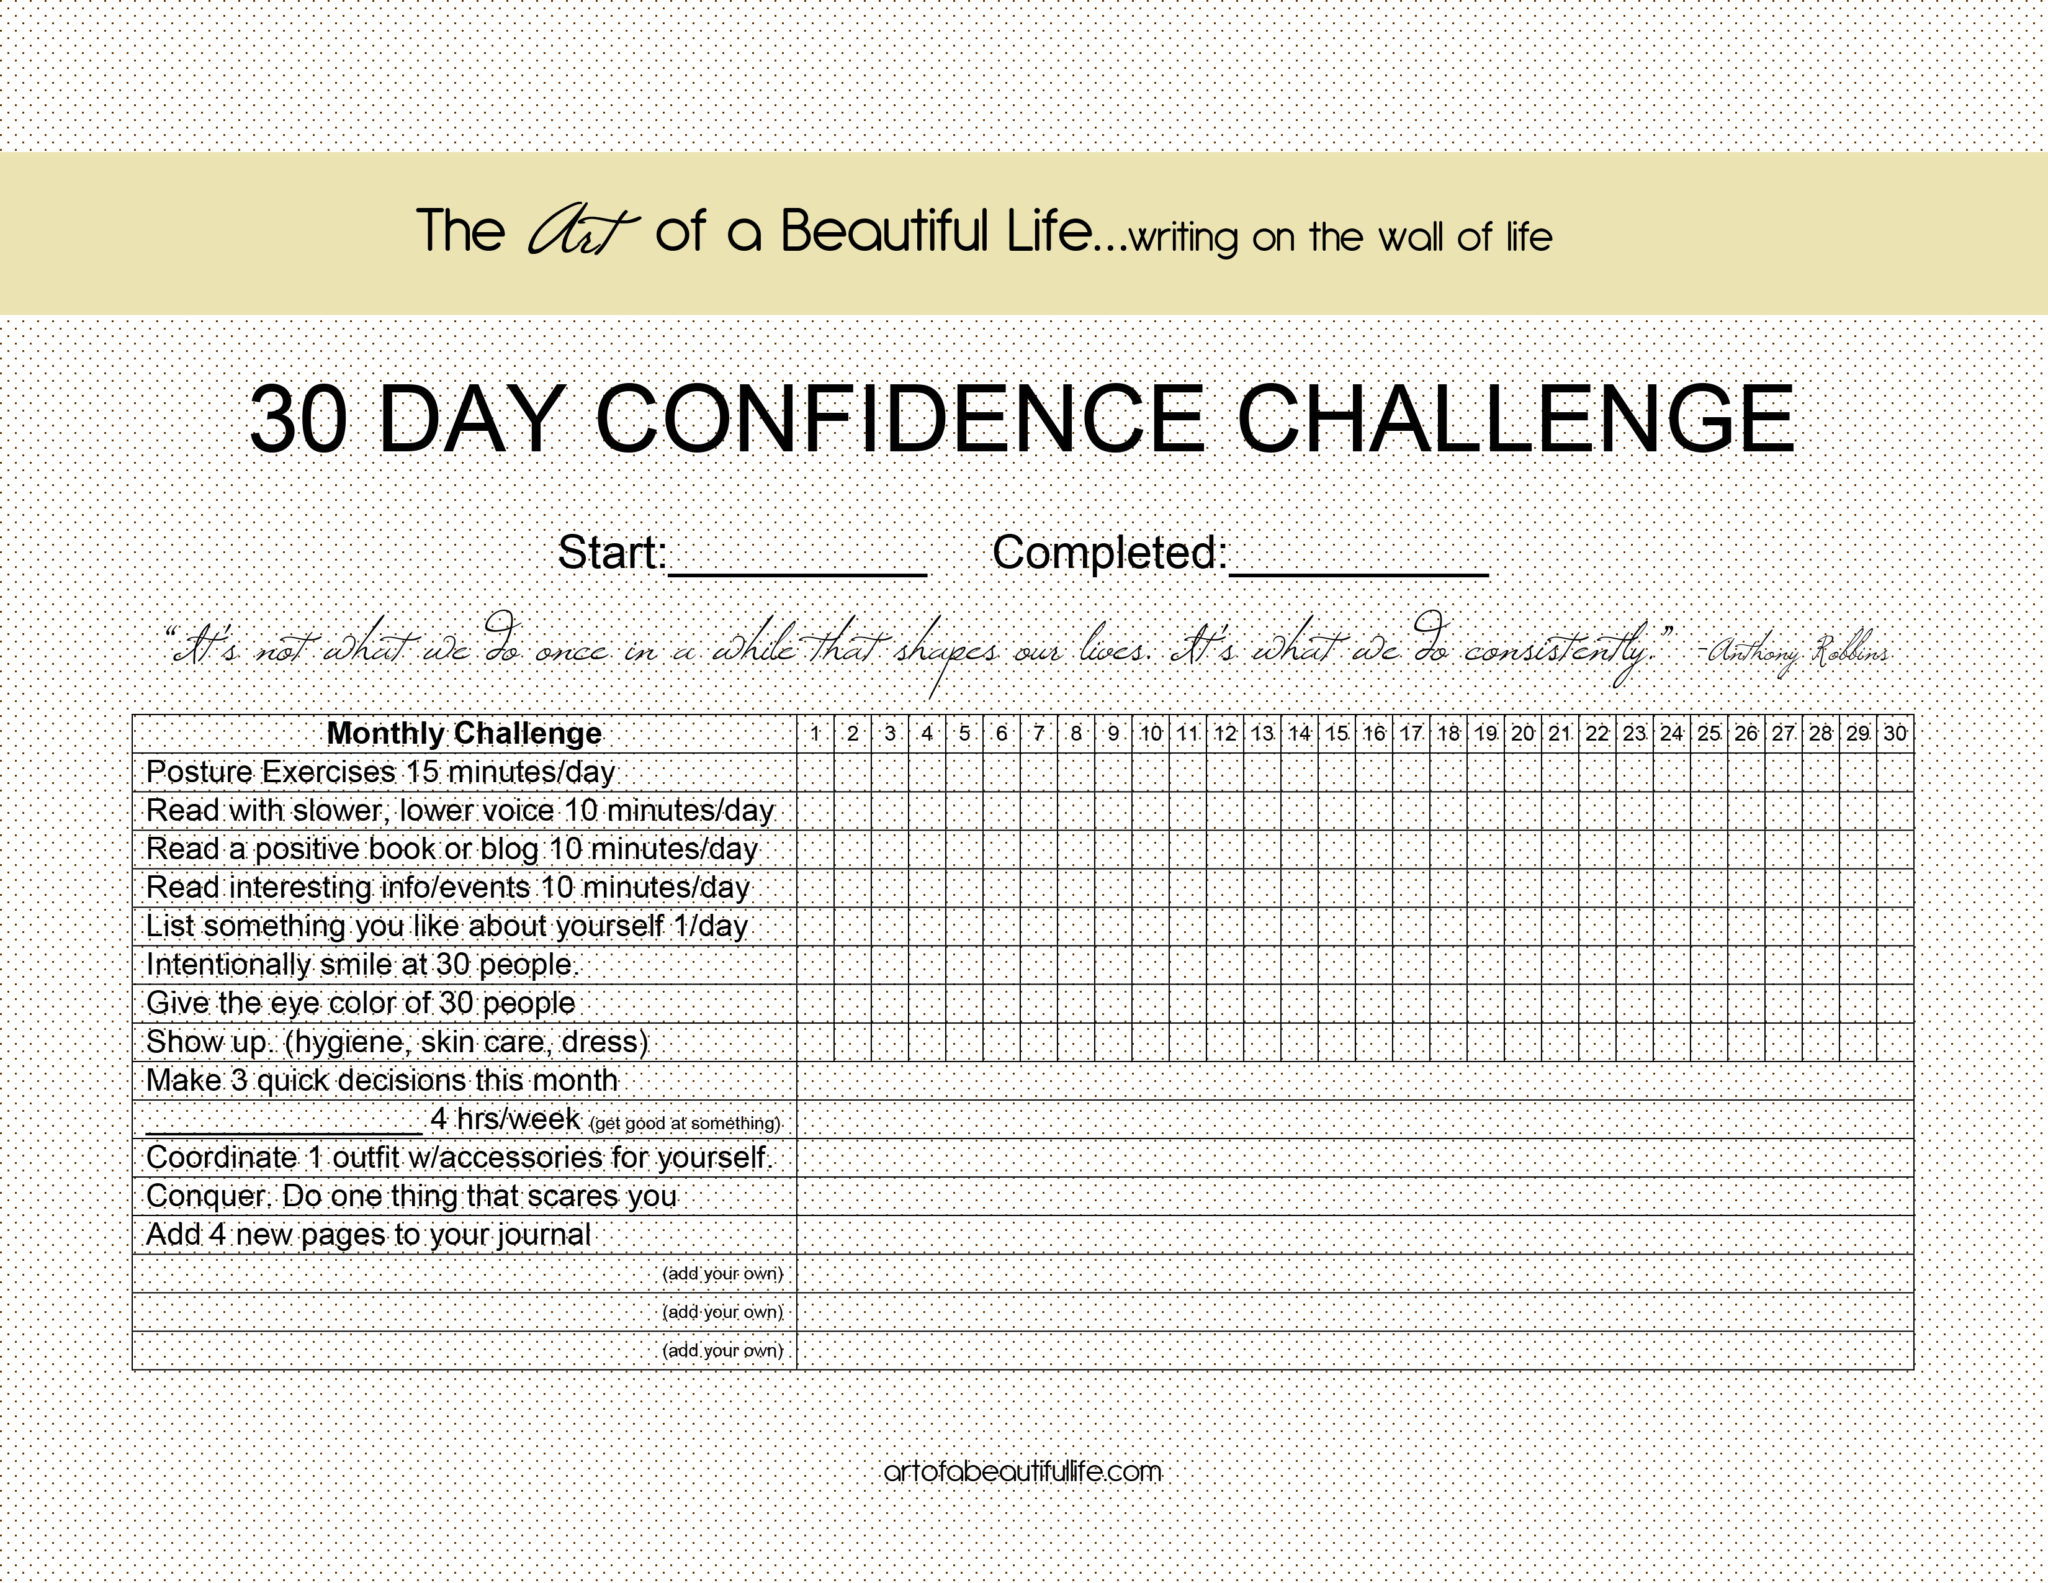 30 Day Challenge - Daily Confidence Challenge - The Art of a Beautiful ...